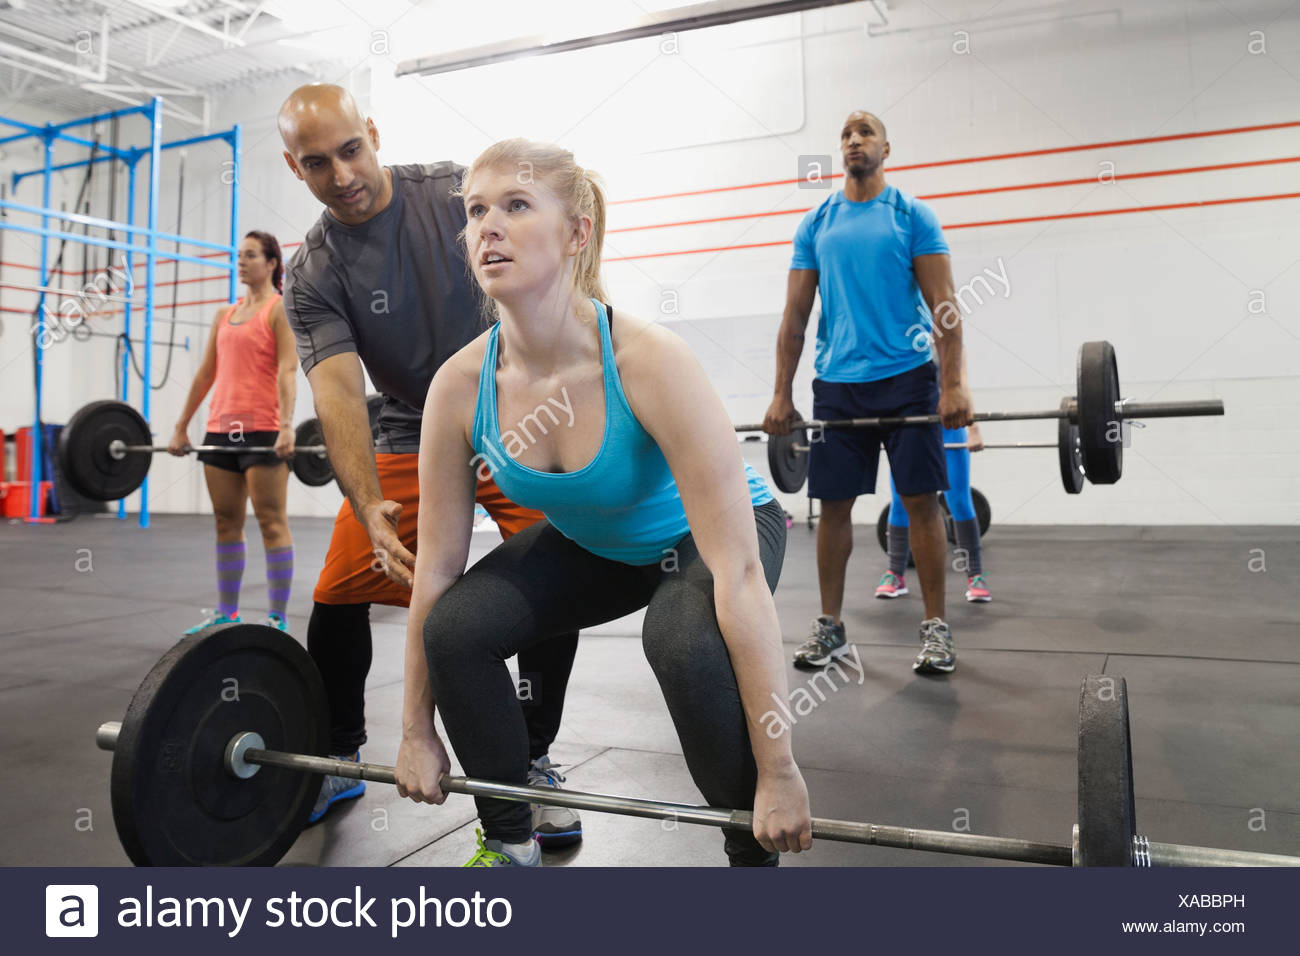 Gym instructor assisting woman with deadlift technique - Stock Image